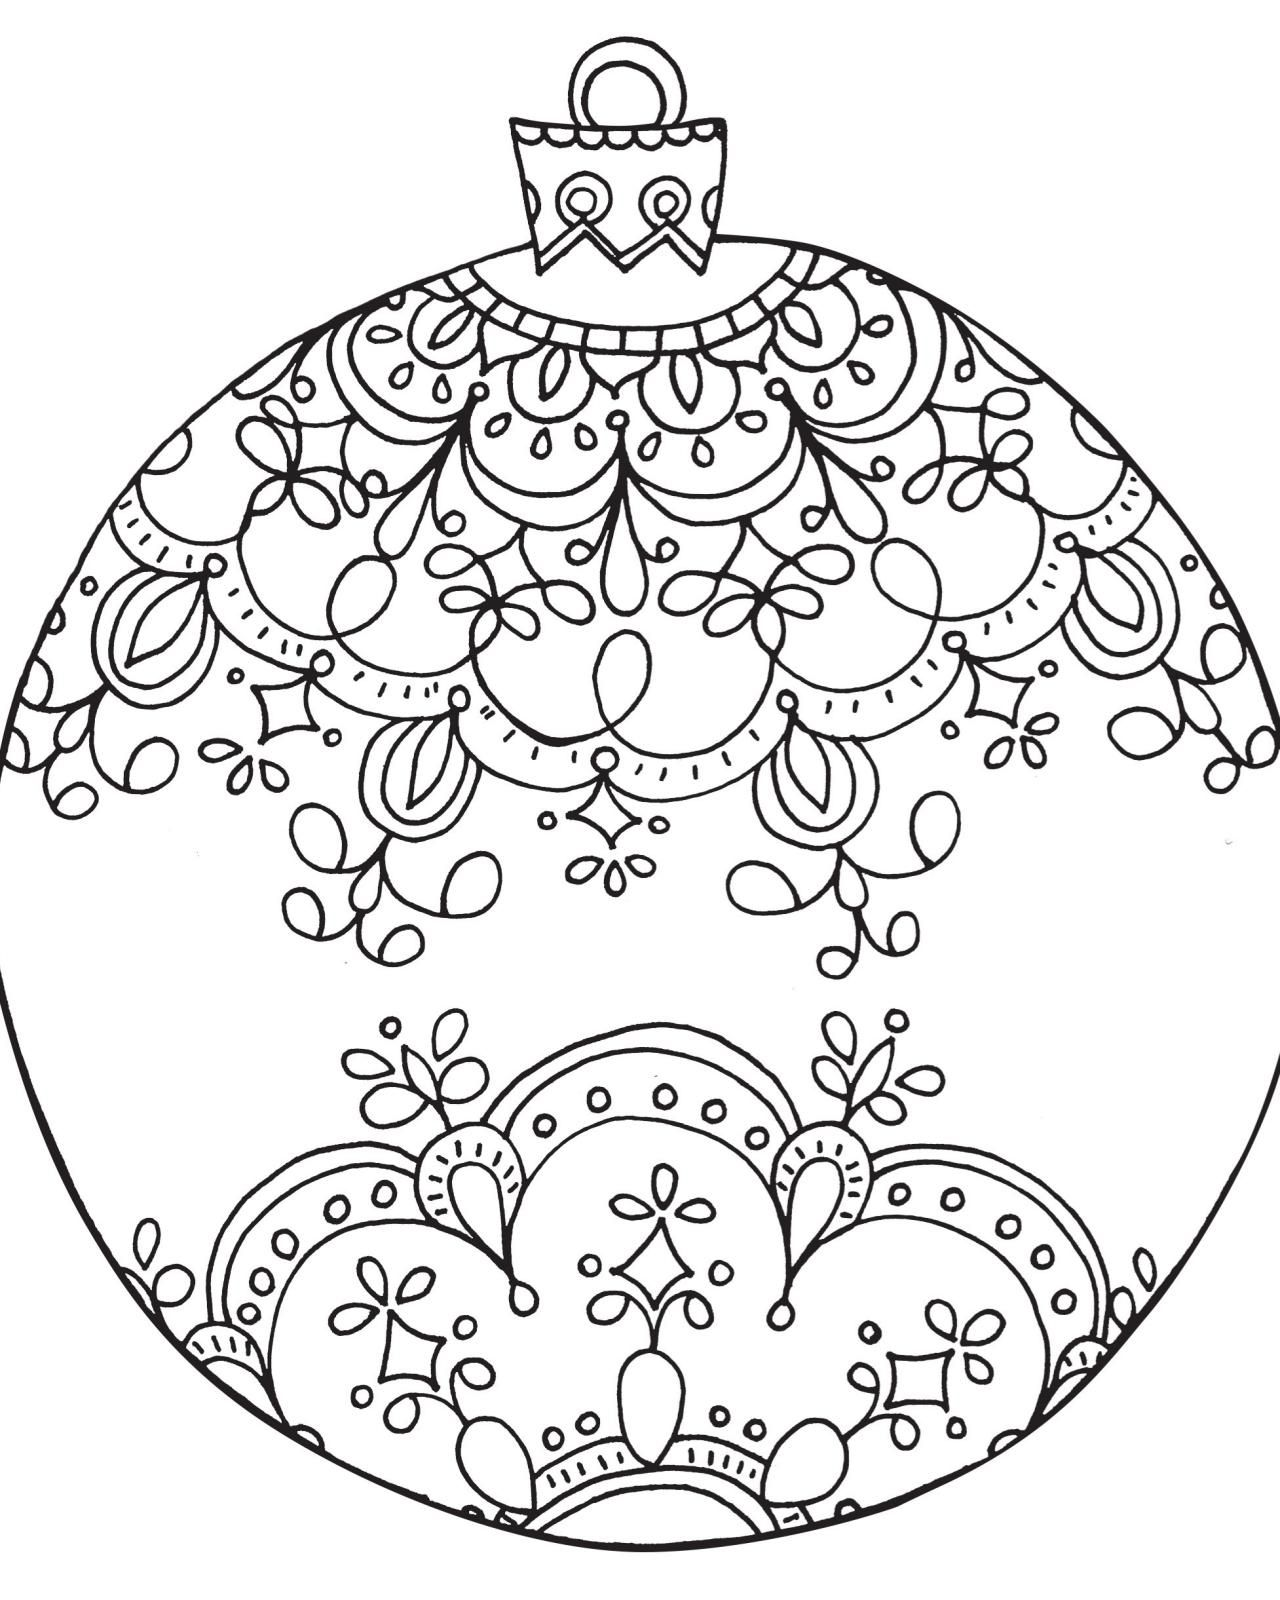 Free Printable Coloring Pages for Adults Mandala